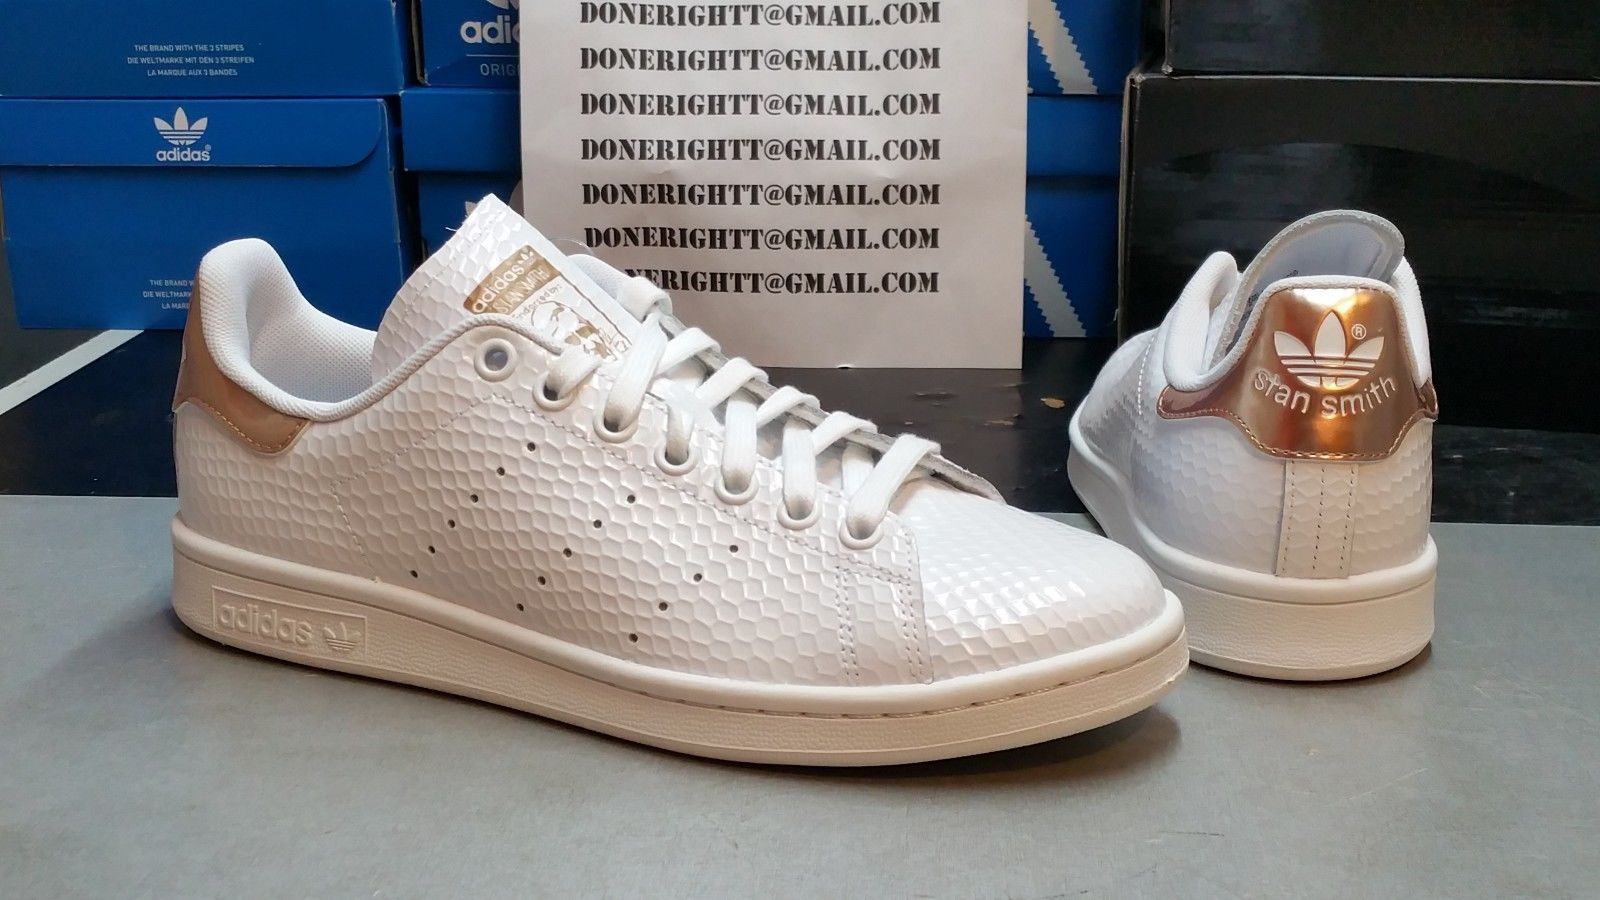 new style 23d3e 8deb1 Womens Adidas Stan Smith Copper White Kettle Snakeskin Metallic Rose Gold  Yeezy   eBay